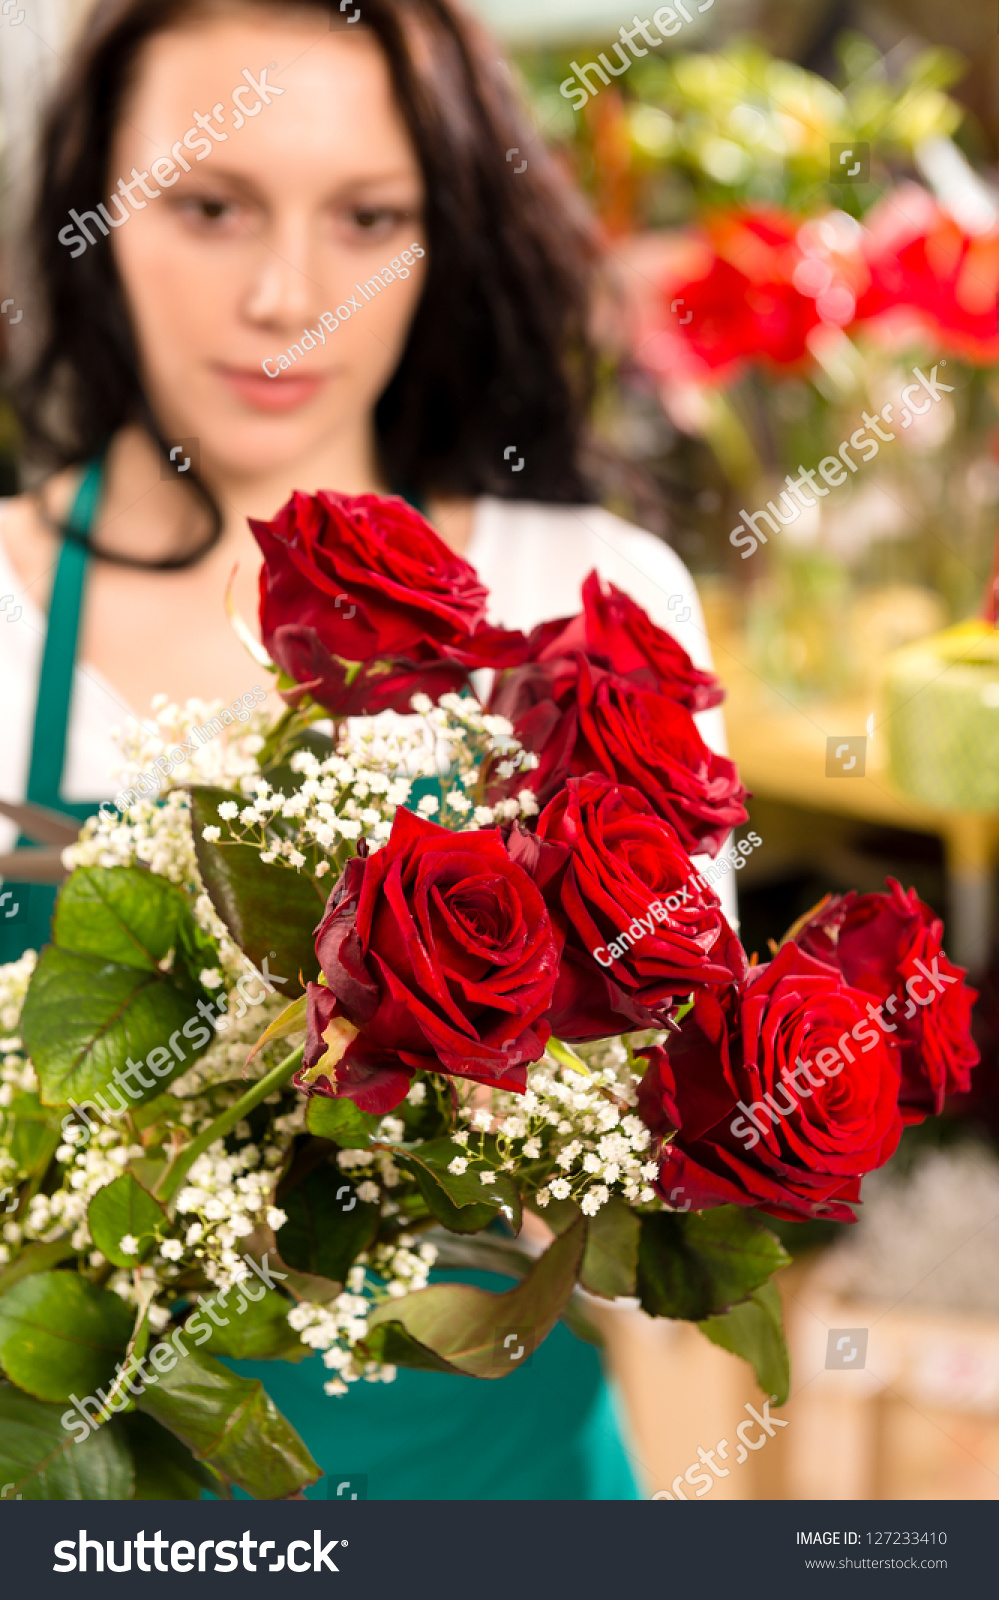 Young woman making flower bouquet florist shop roses selling ez canvas id 127233410 izmirmasajfo